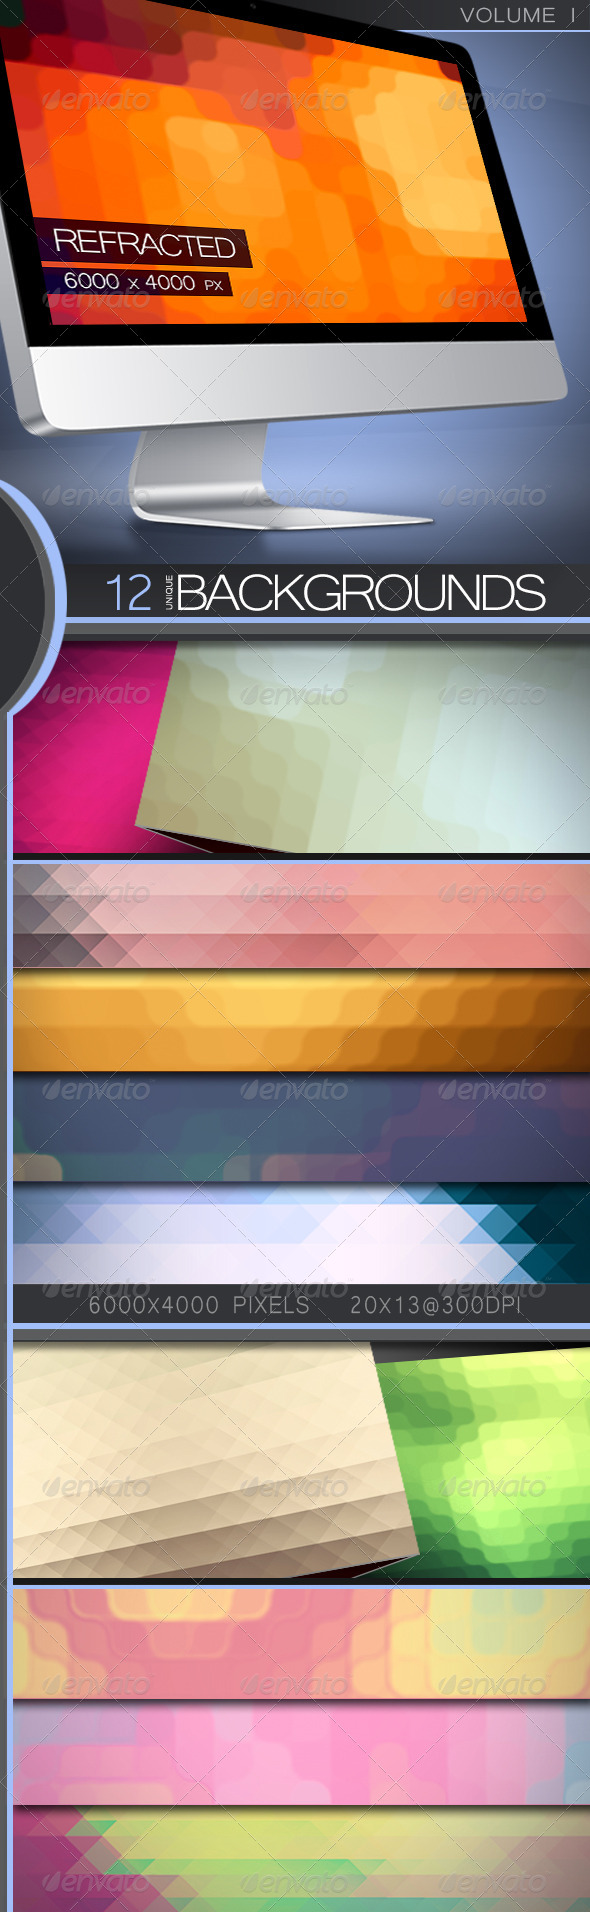 GraphicRiver Refracted Backgrounds Volume 1 5360889